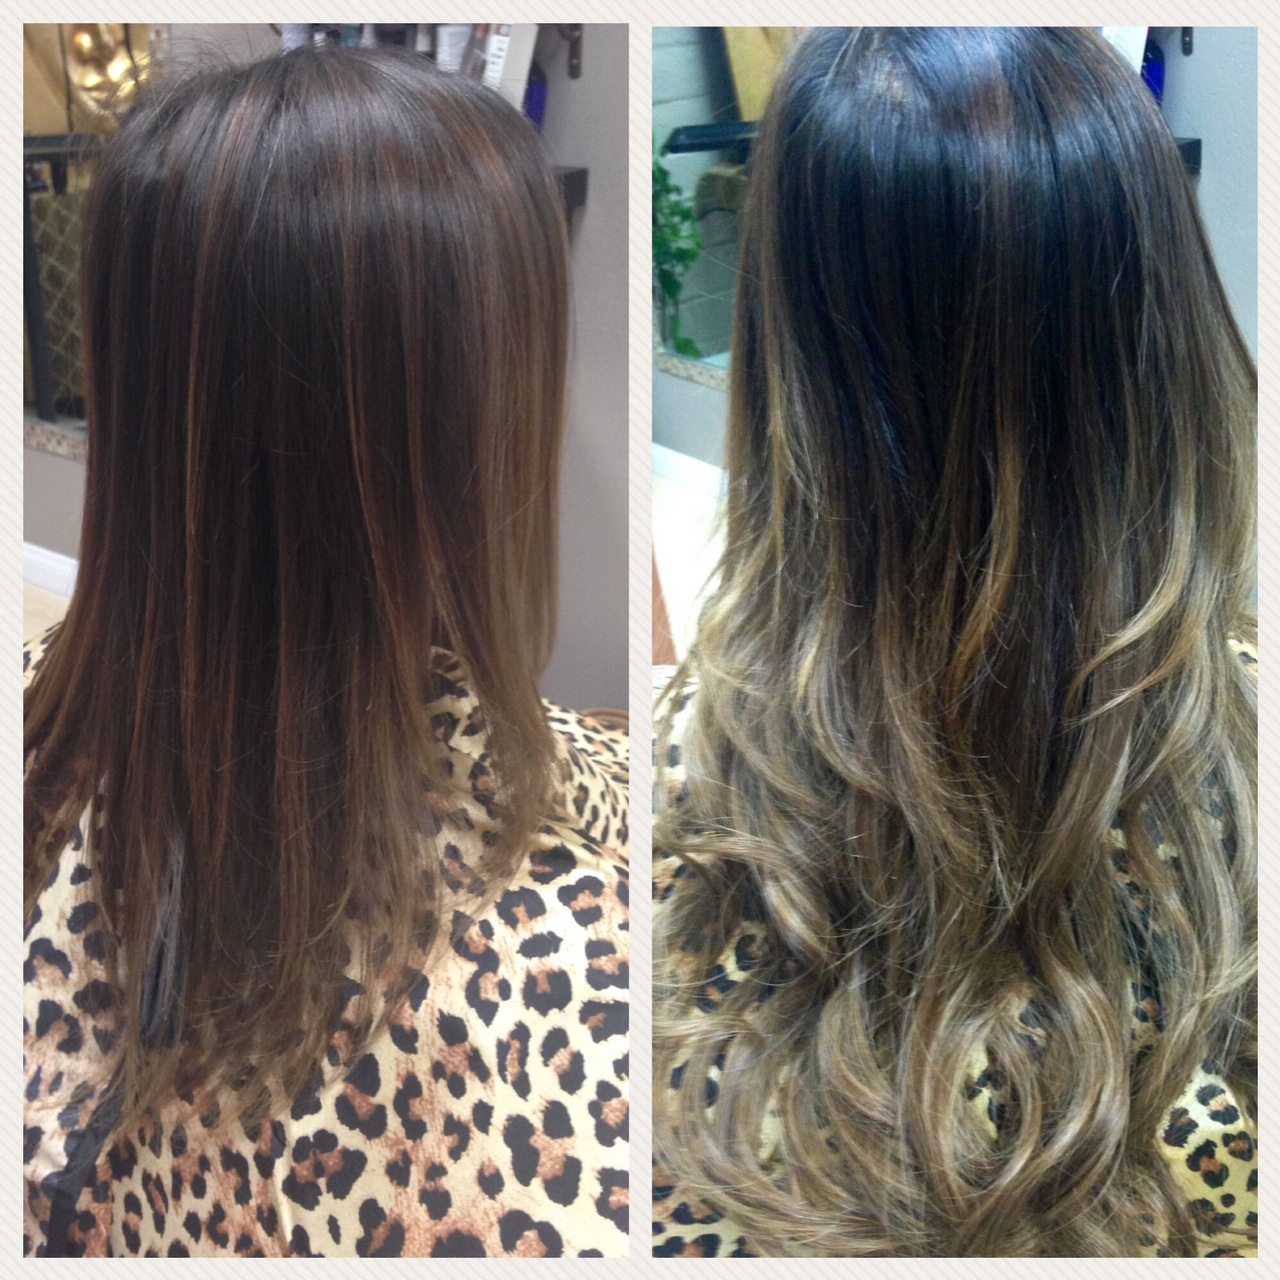 Before and After image of blended sandy blonde hair extensions to replace tired brown hair-hair salon solana beach -Salon LG-+1 858 344 7865.